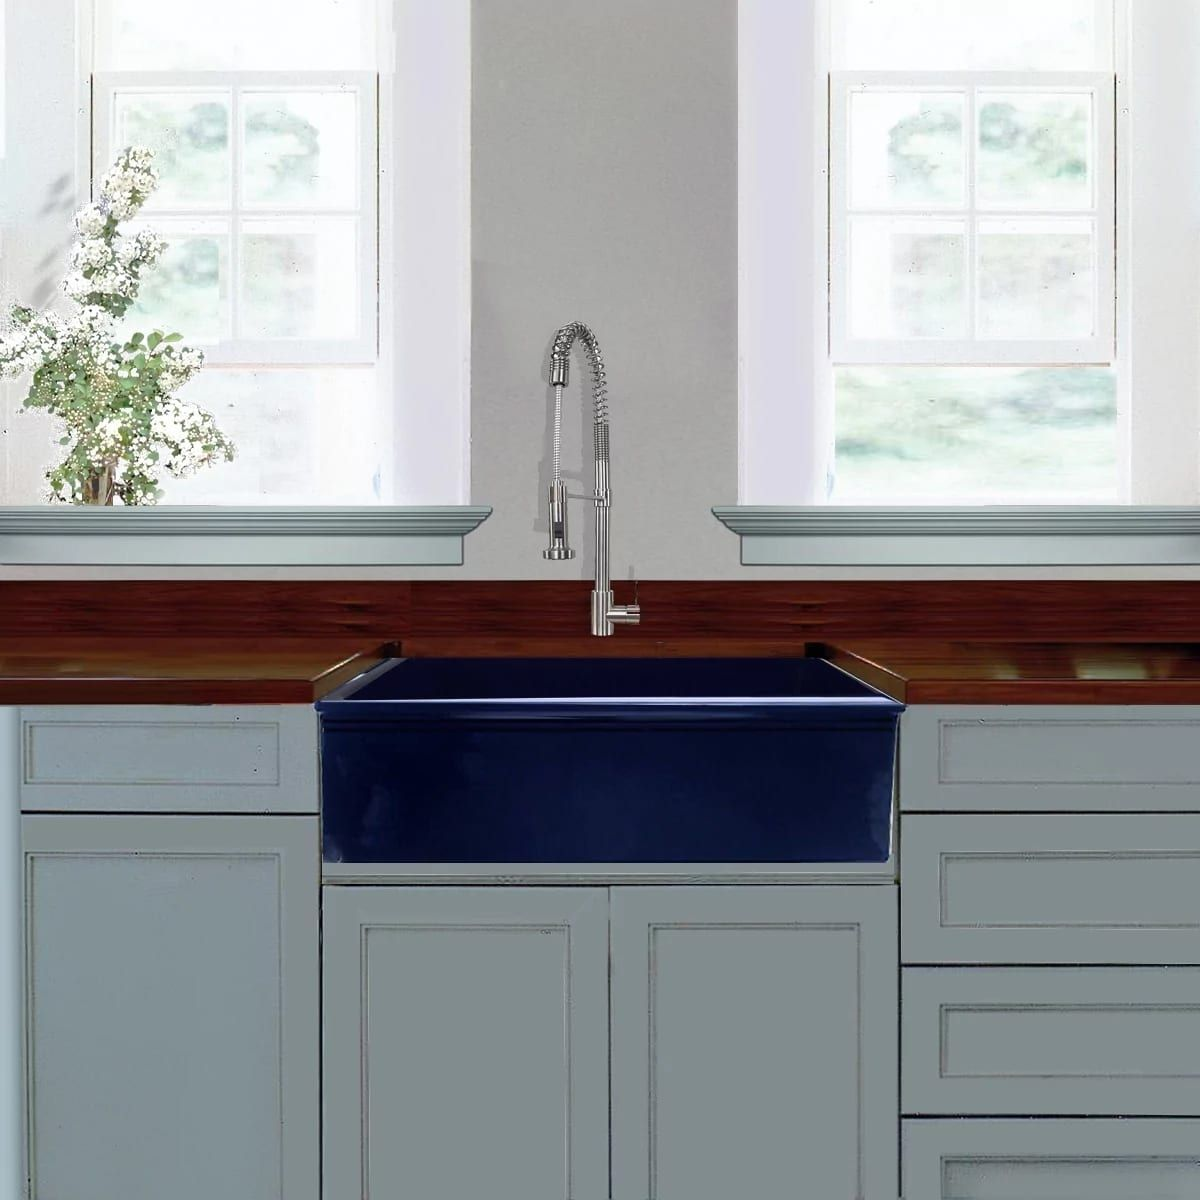 Image Result For Cobalt Blue Farm Sink Blue Kitchen Cabinets Fireclay Farmhouse Sink Farmhouse Sink